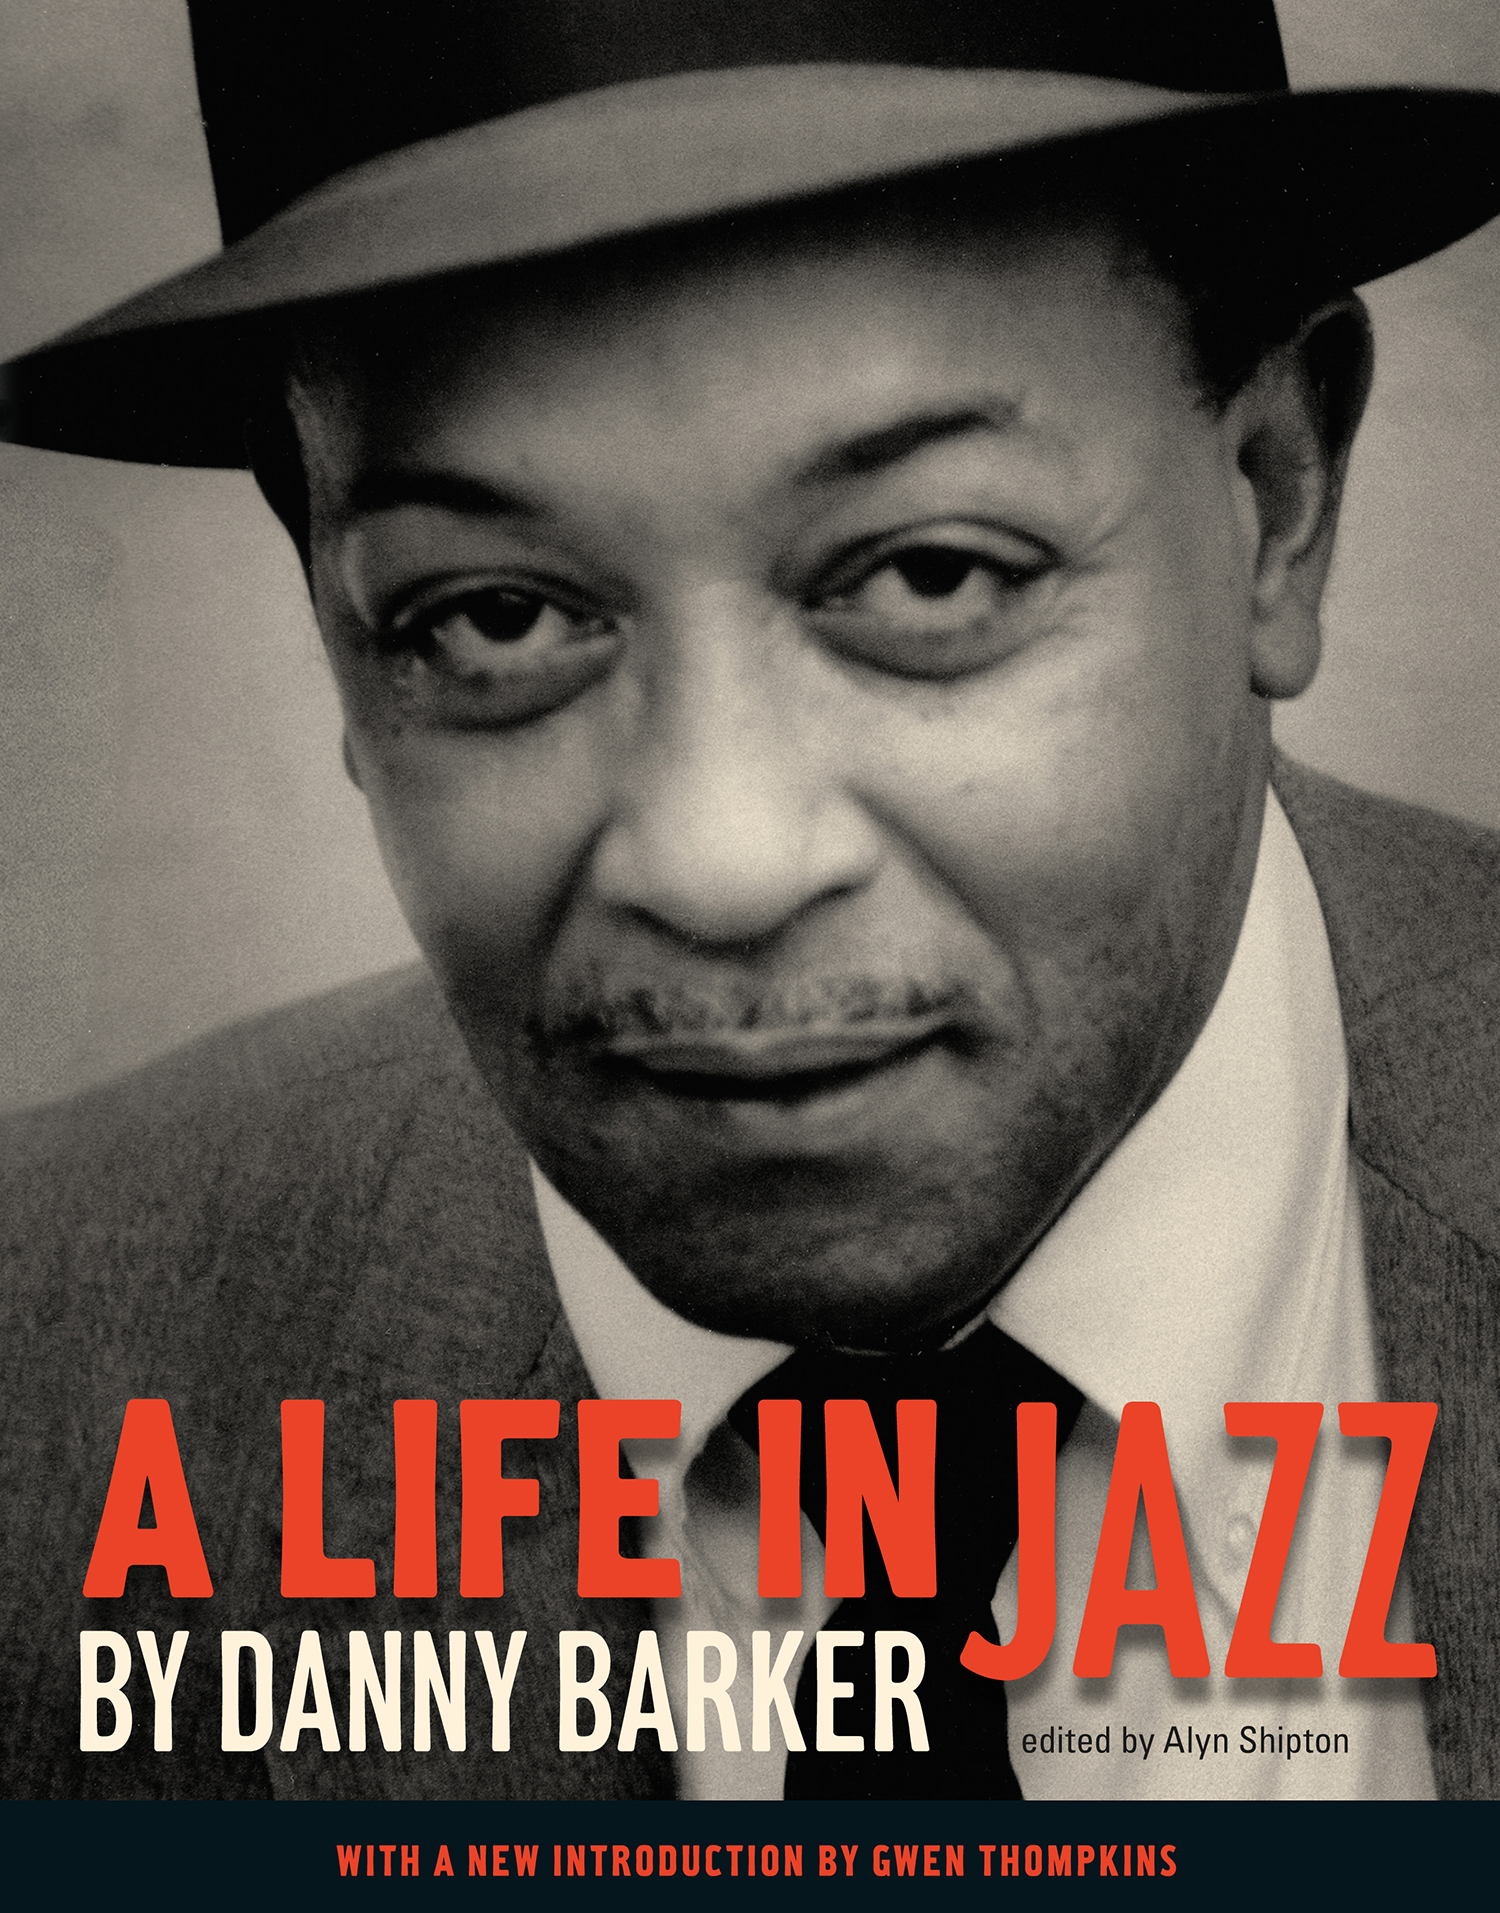 a-life-in-jazz_by-danny-barker_thnoc